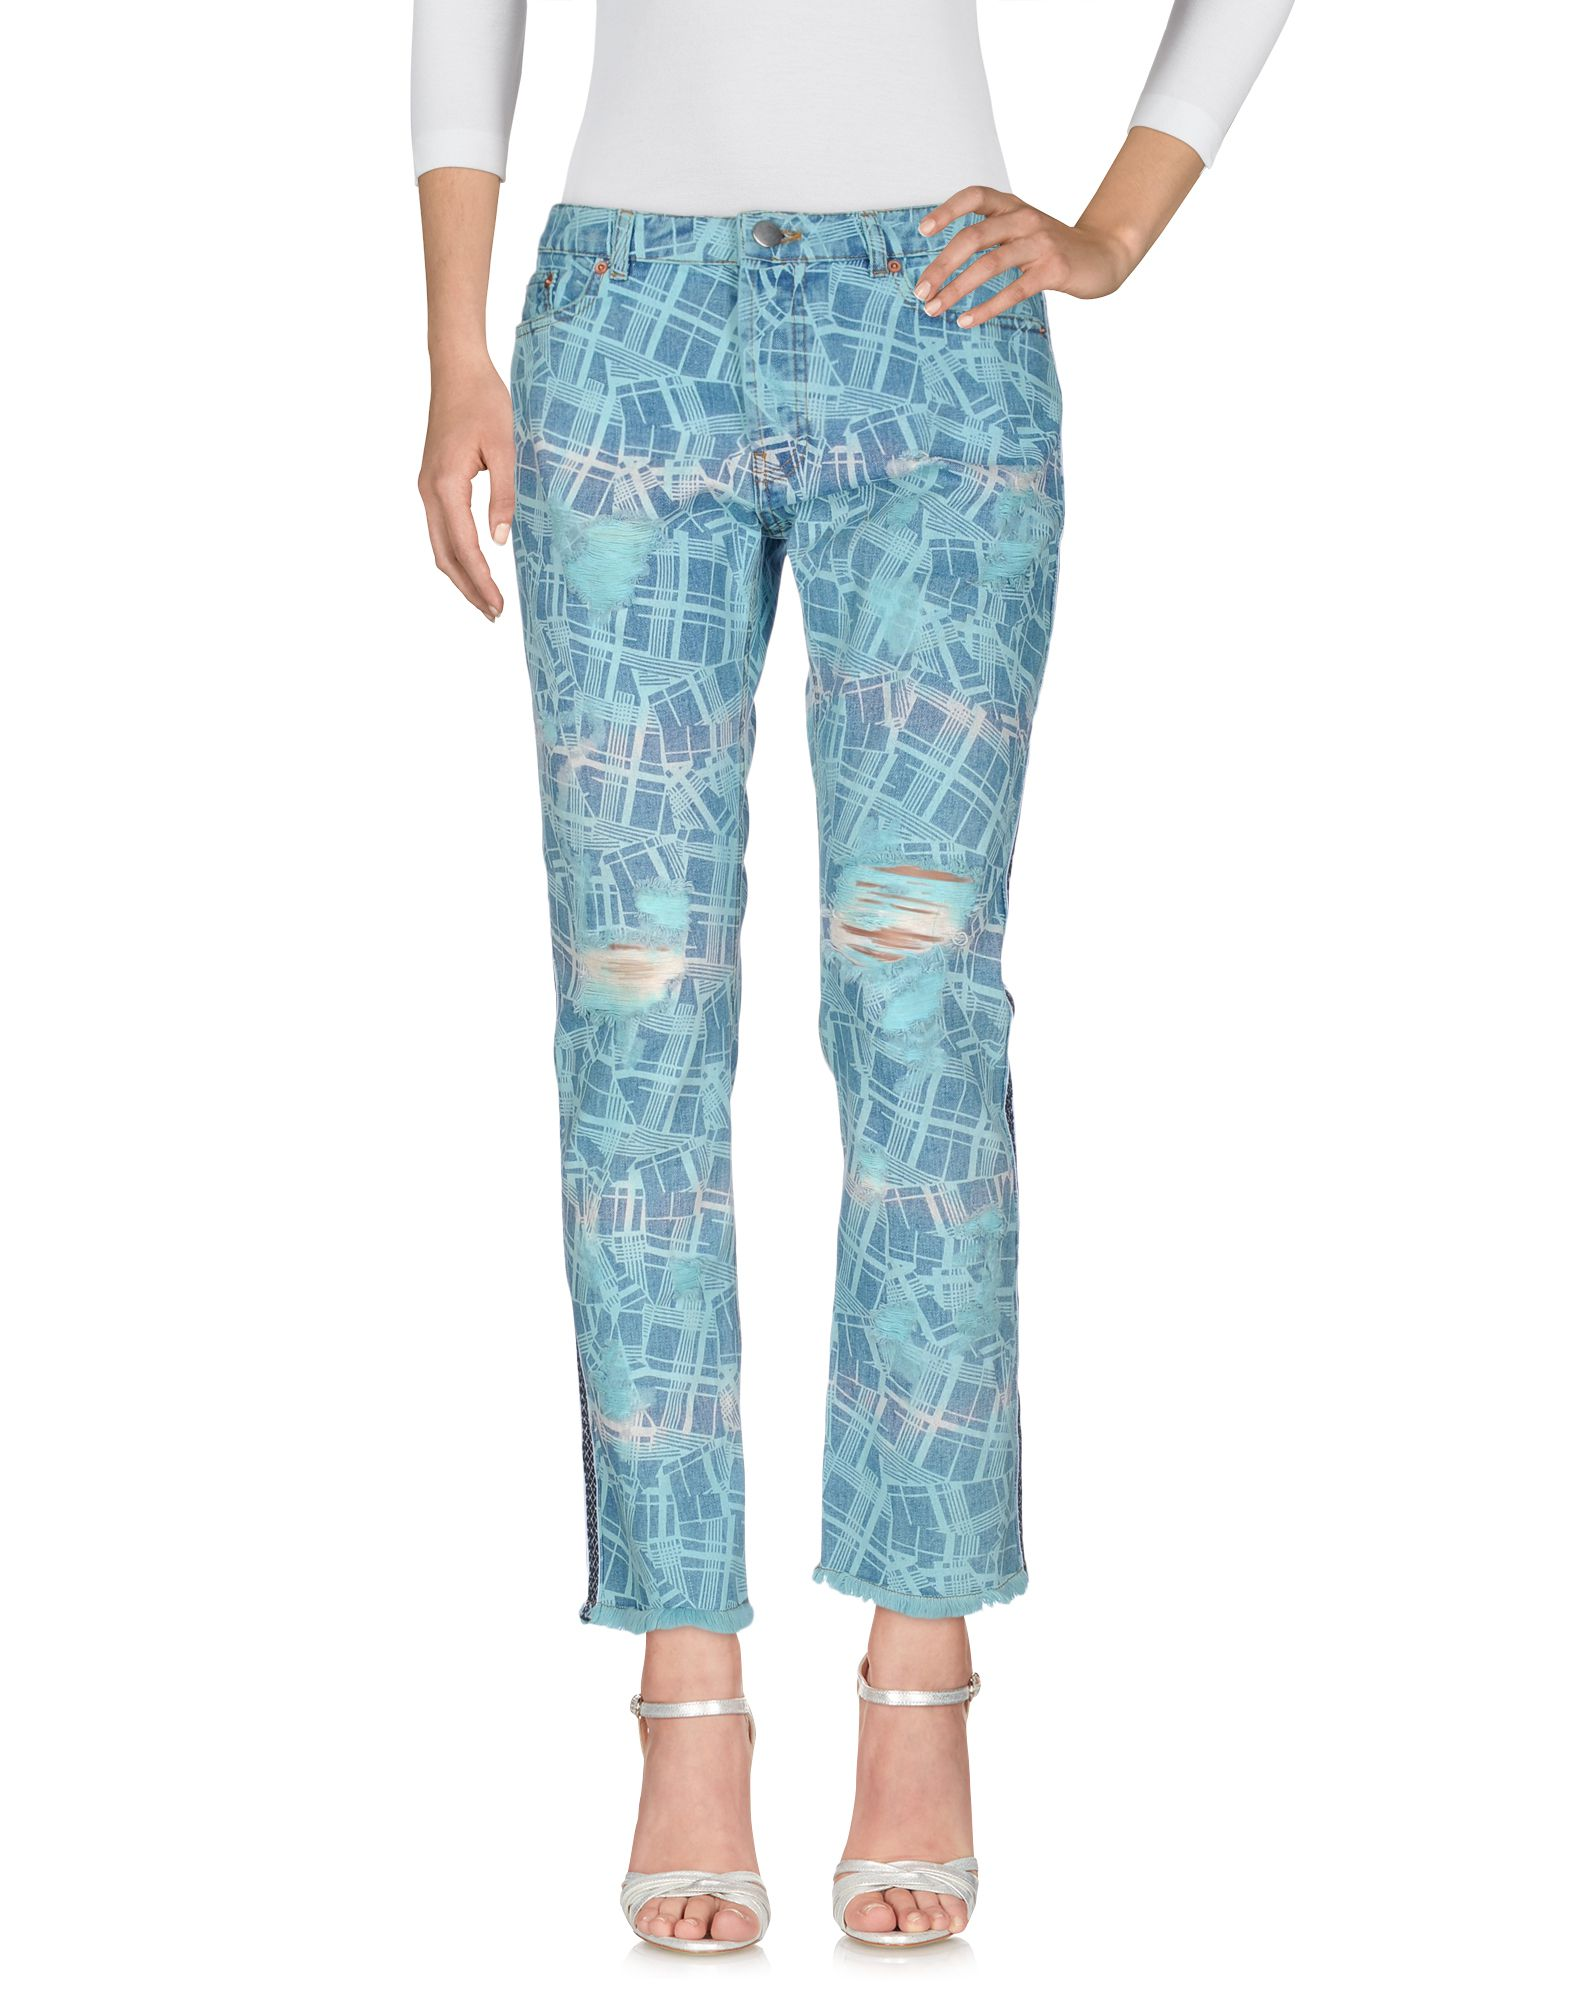 JAMES LONG Denim Pants in Azure